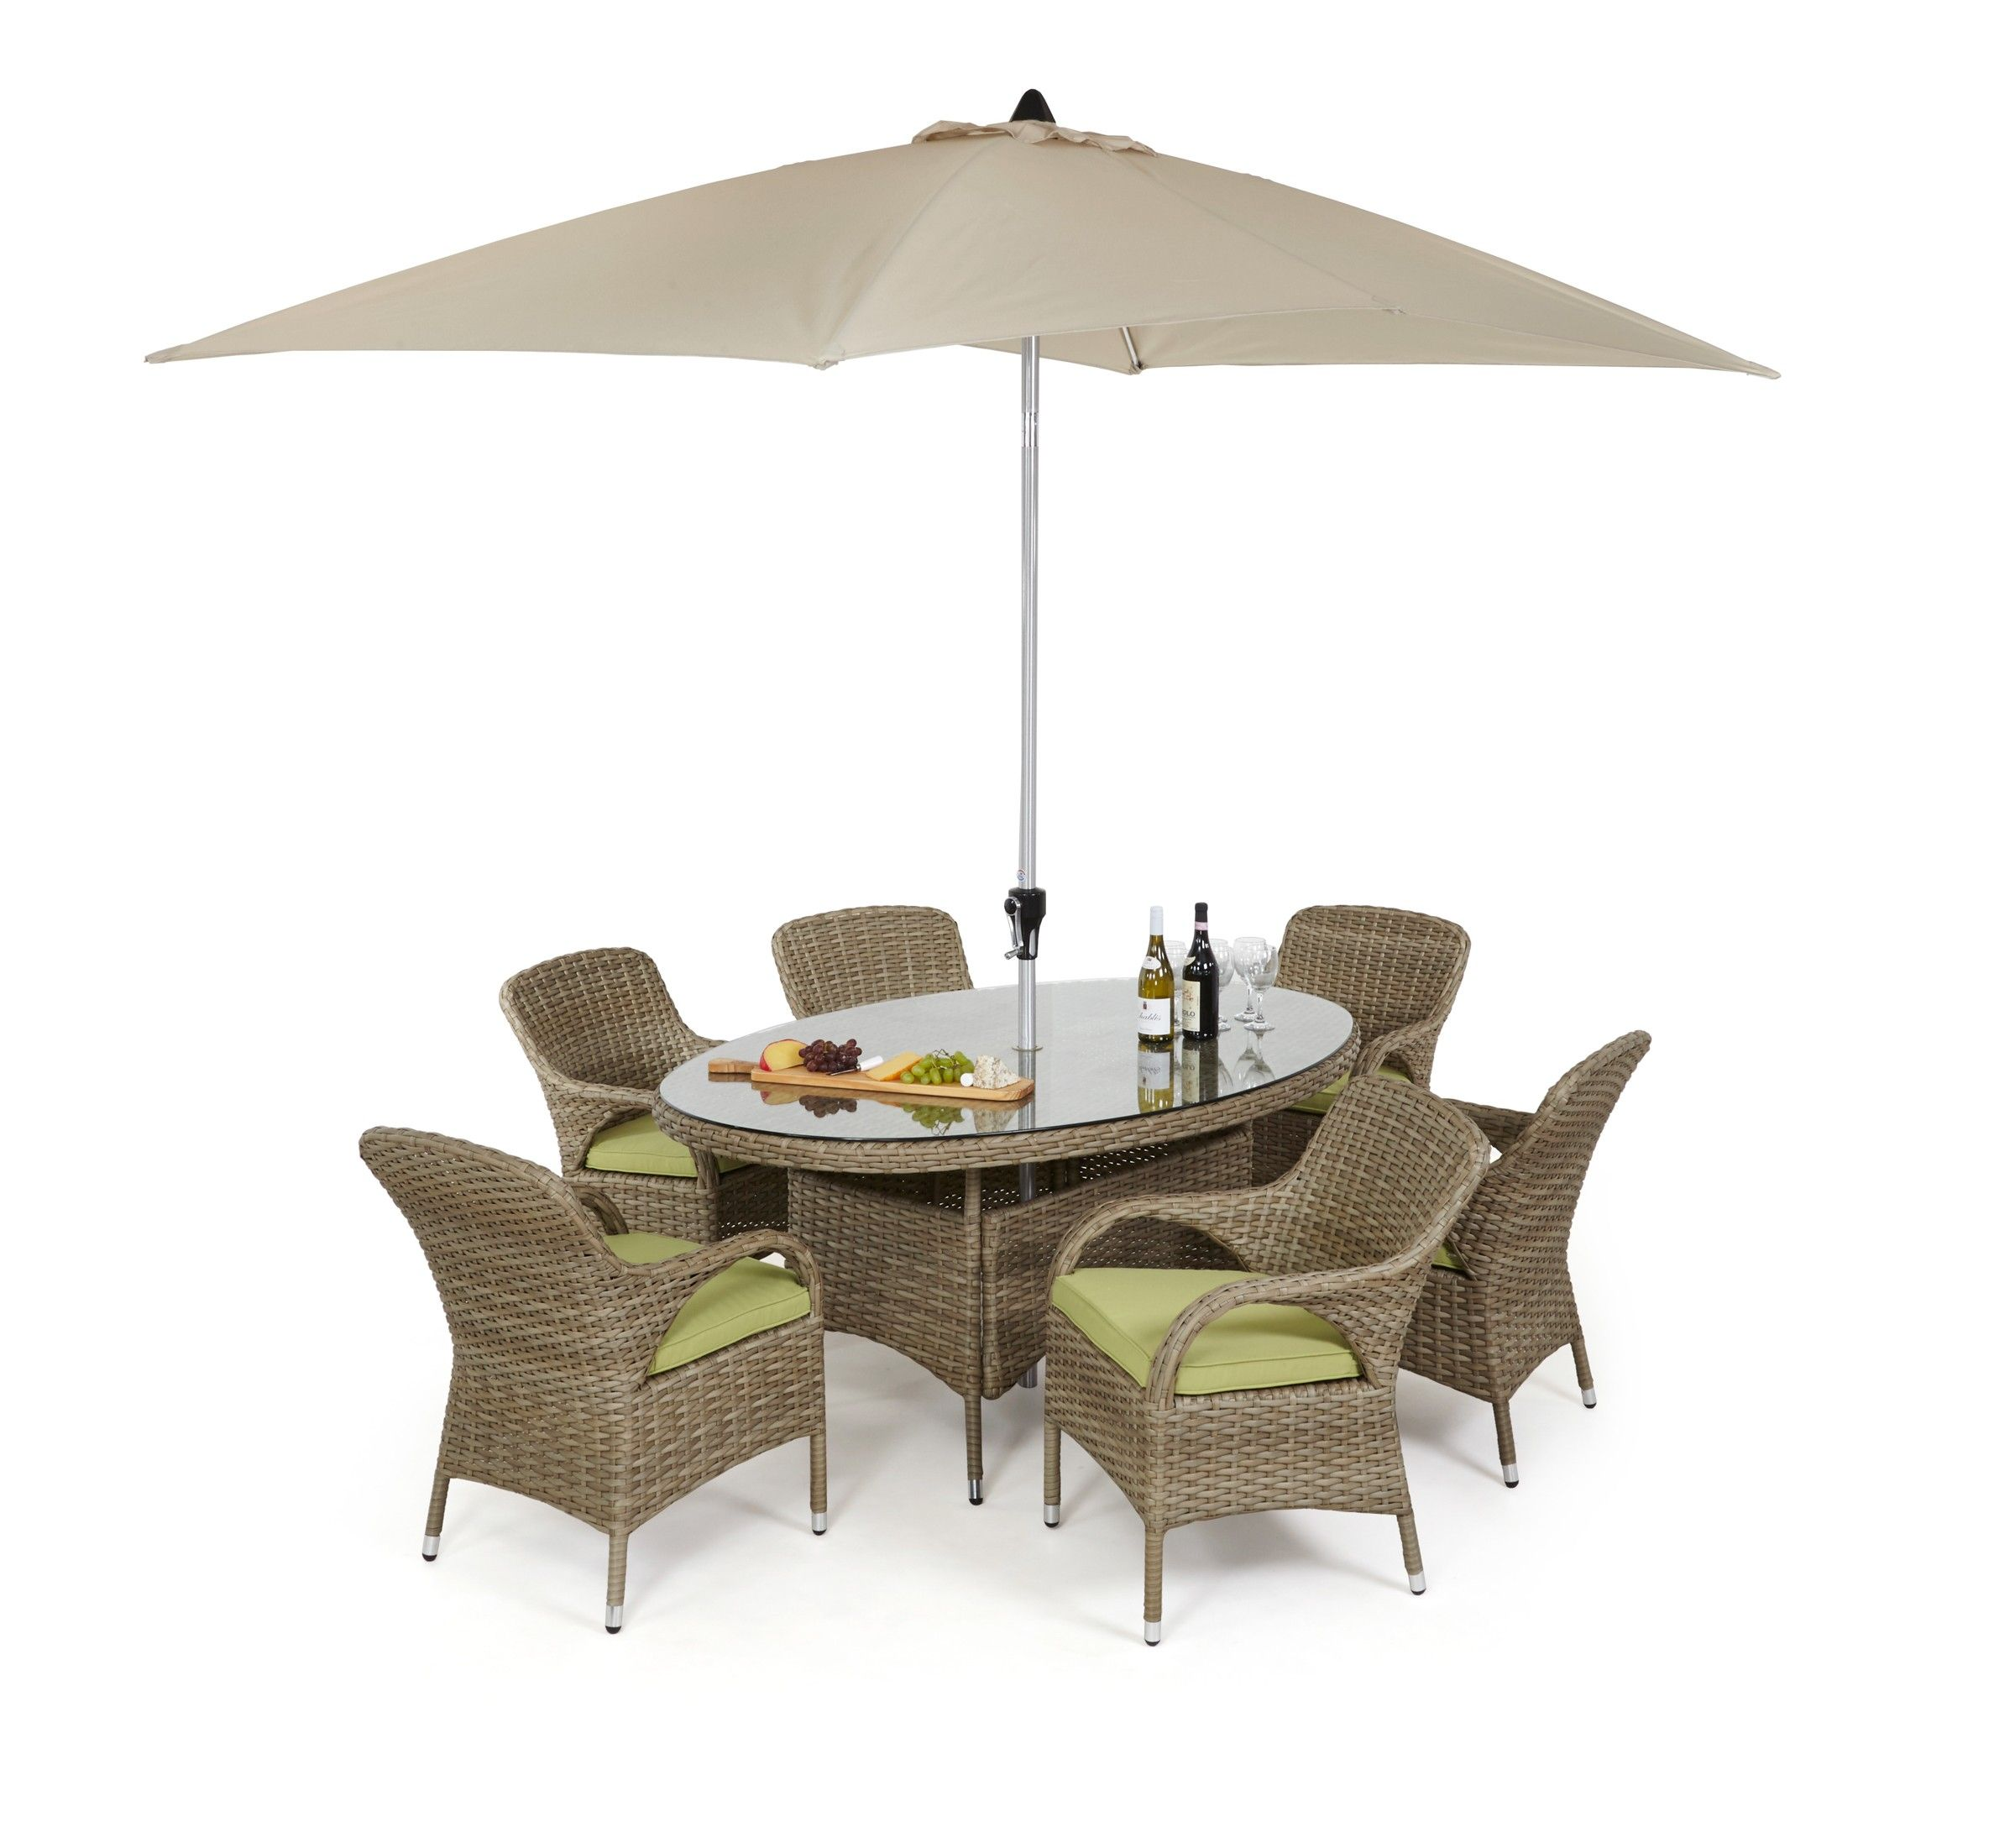 Maze rattan milan seat oval dining set with arm chairs outdoor